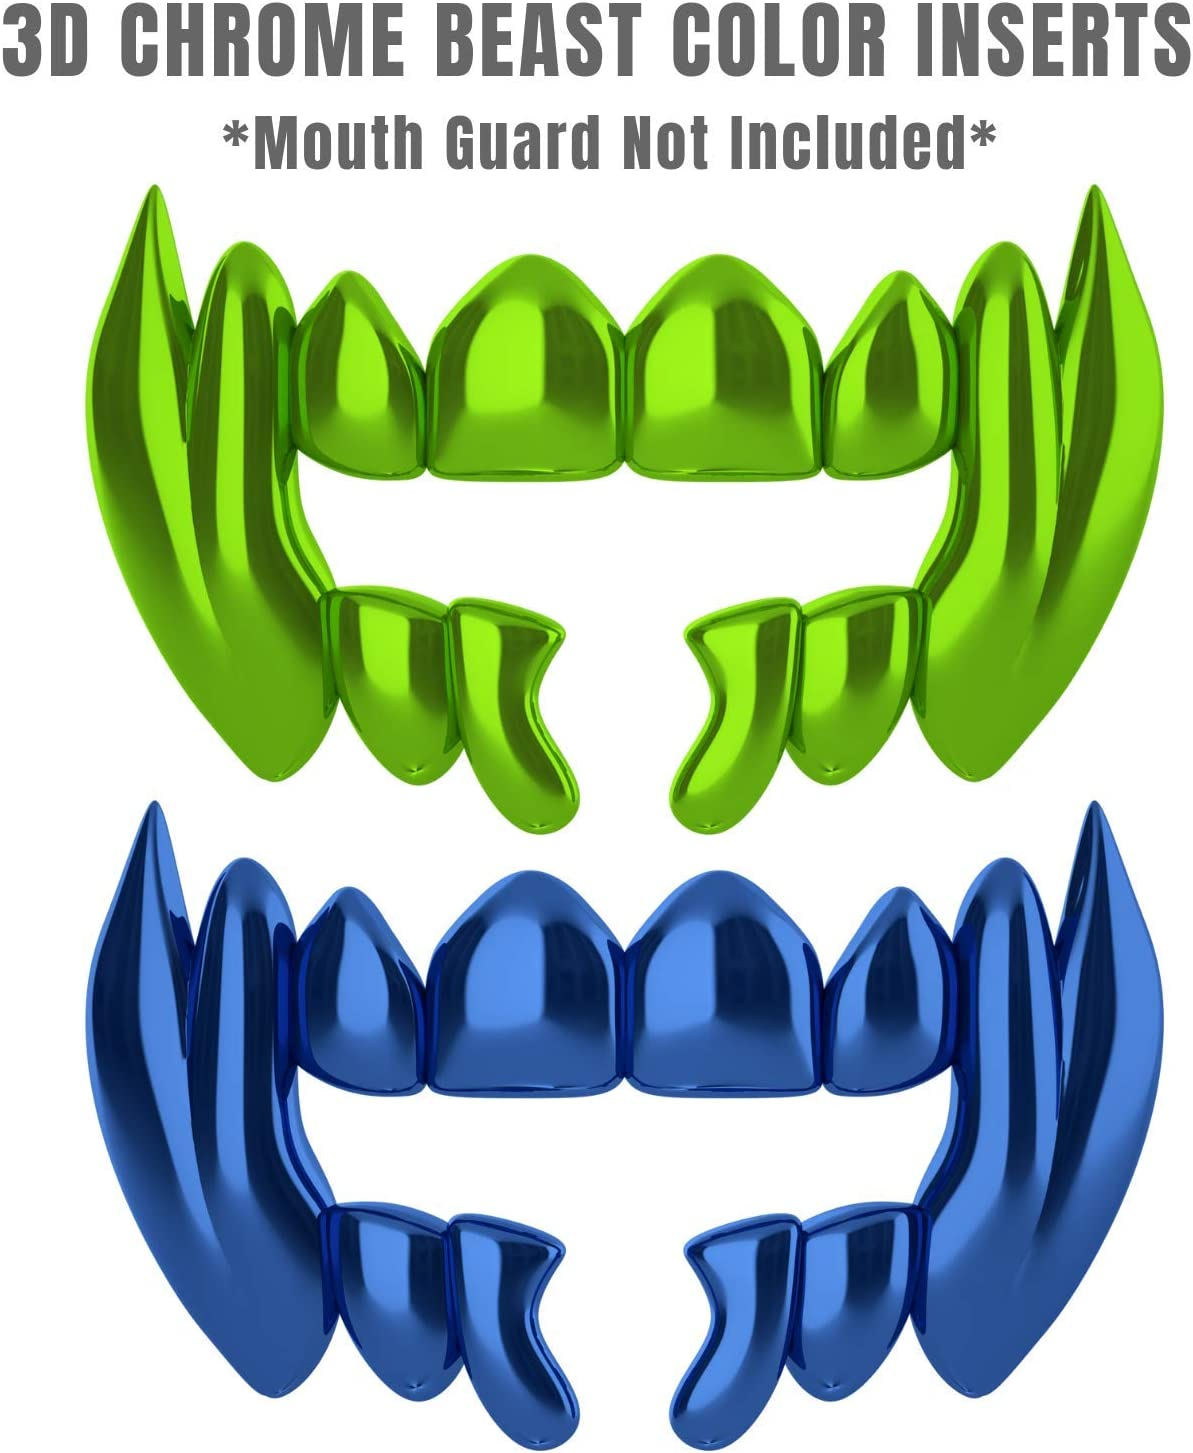 Loudmouth 3D Chrome Beast Blister Pack for Football Mouth Guard